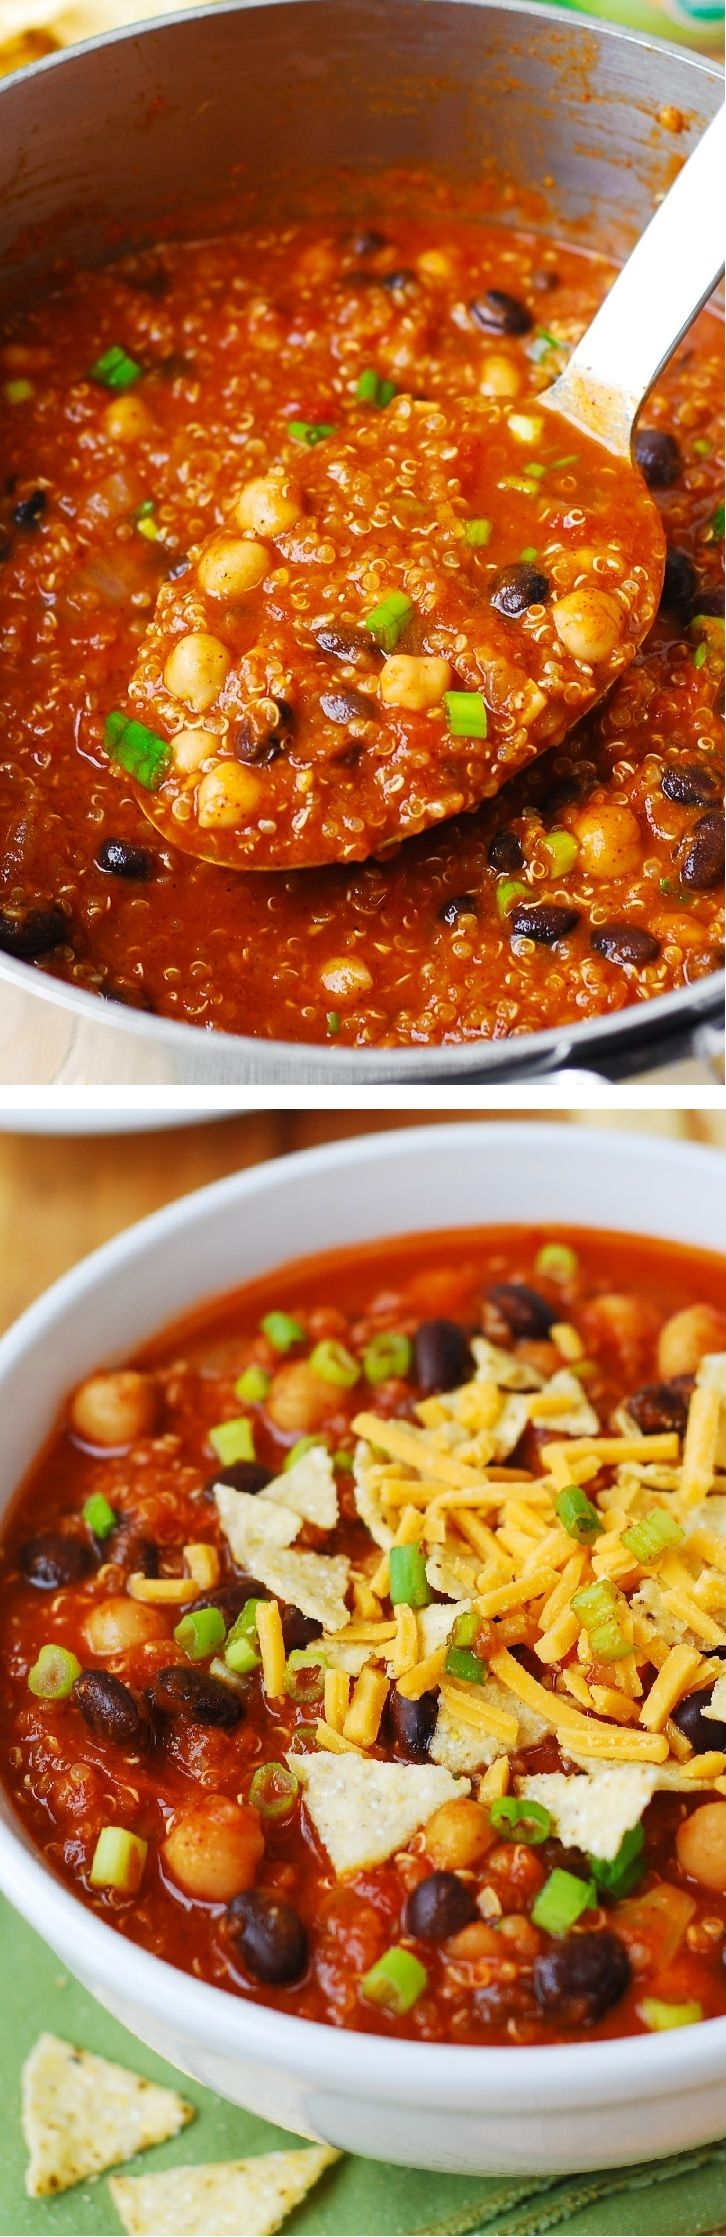 Delicious Pumpkin Quinoa Chili with Black Beans and Chickpeas (garbanzo beans) – a yummy vegetarian version of a regular chili – this recipe will keep you full and satisfied! Healthy and gluten free recipe.